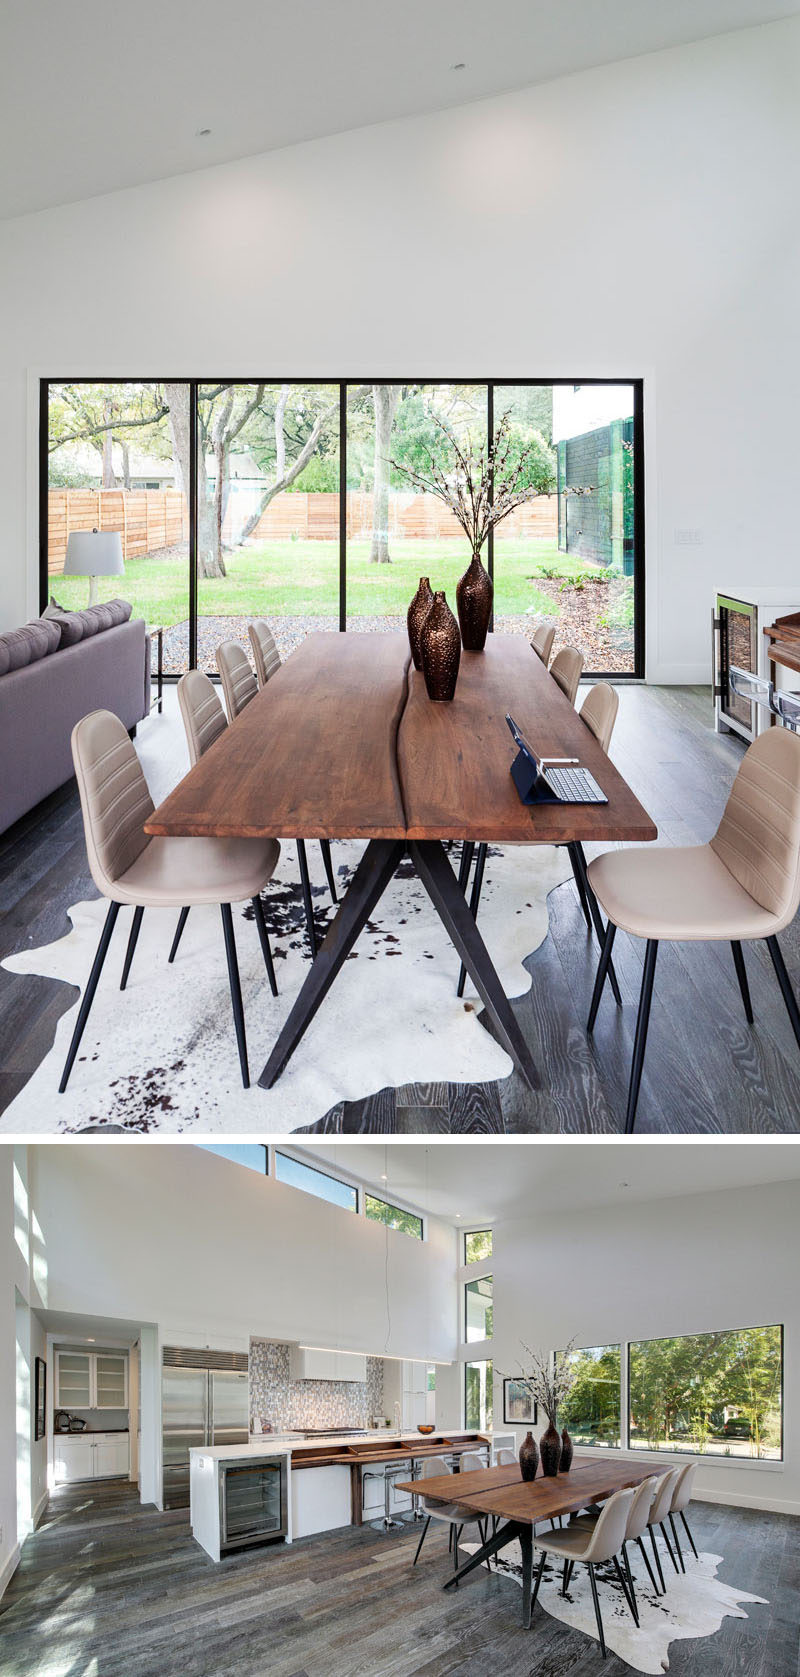 The interior of this modern house has a dining area with views of the backyard, and the wood dining table ties in with the tall trees outside.